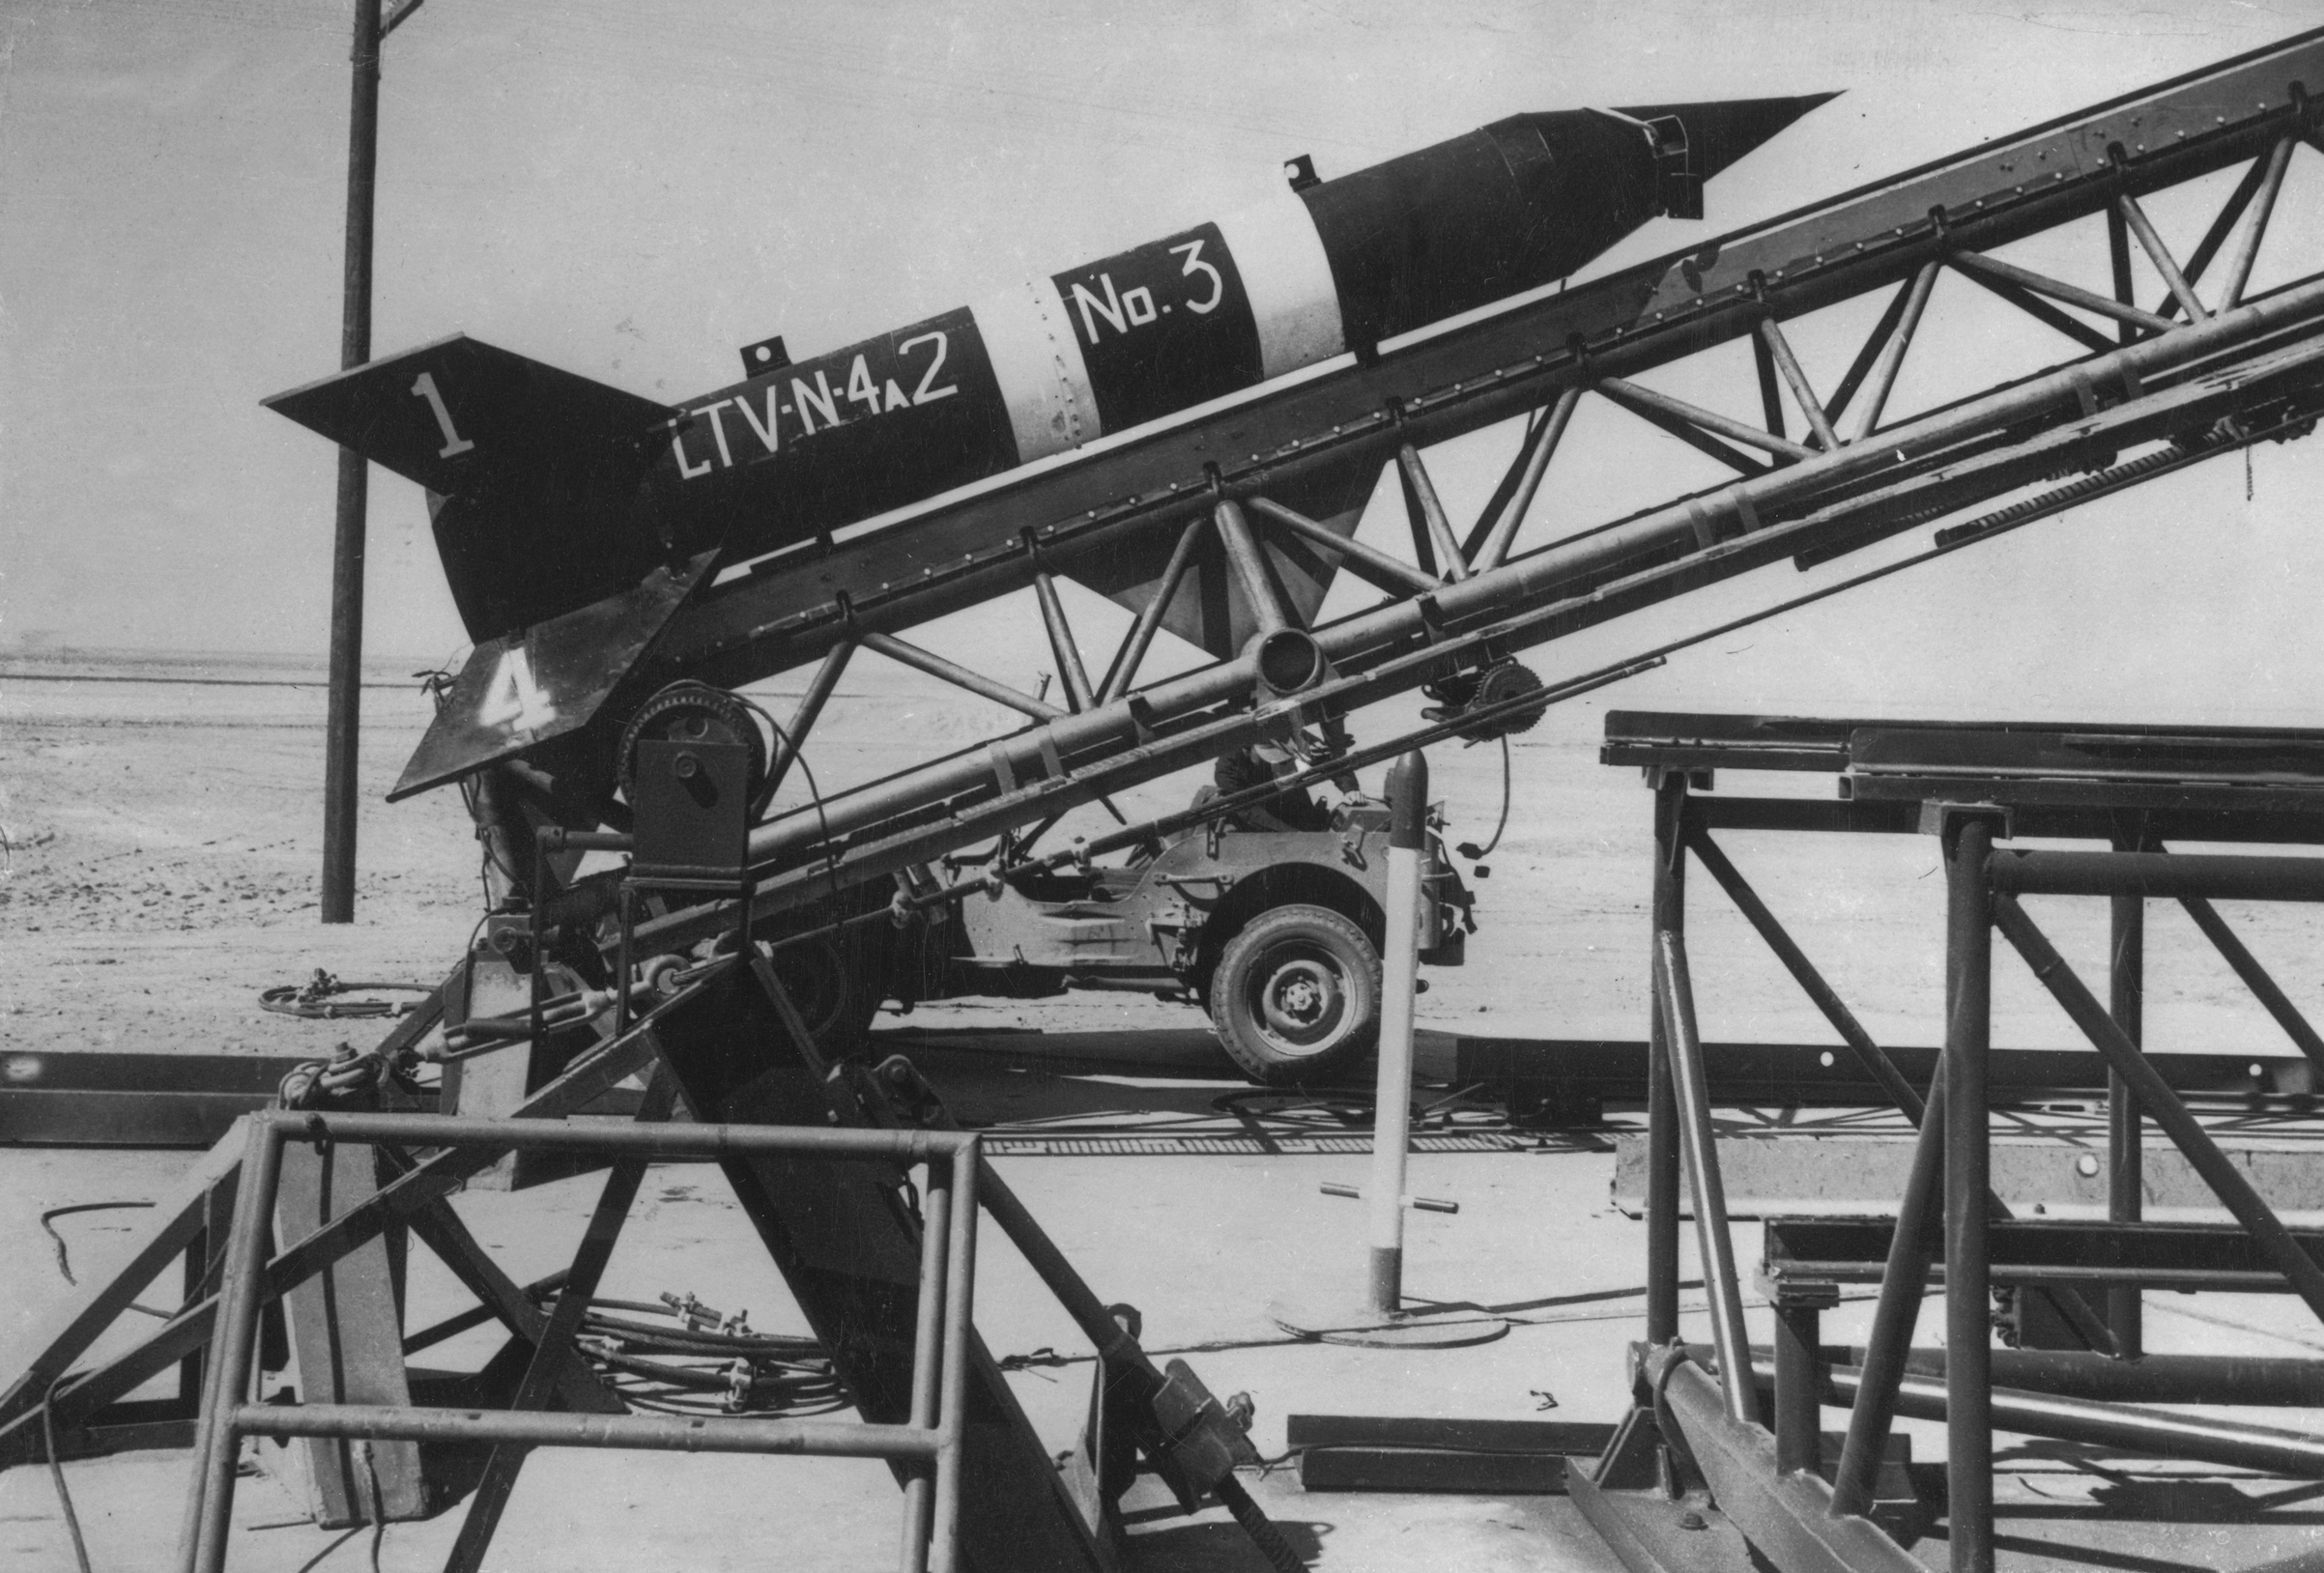 A newly-developed  rocket on a launching ramp at the Naval Ordnance Test Station at China Lake, Calif., Feb. 12, 1949.